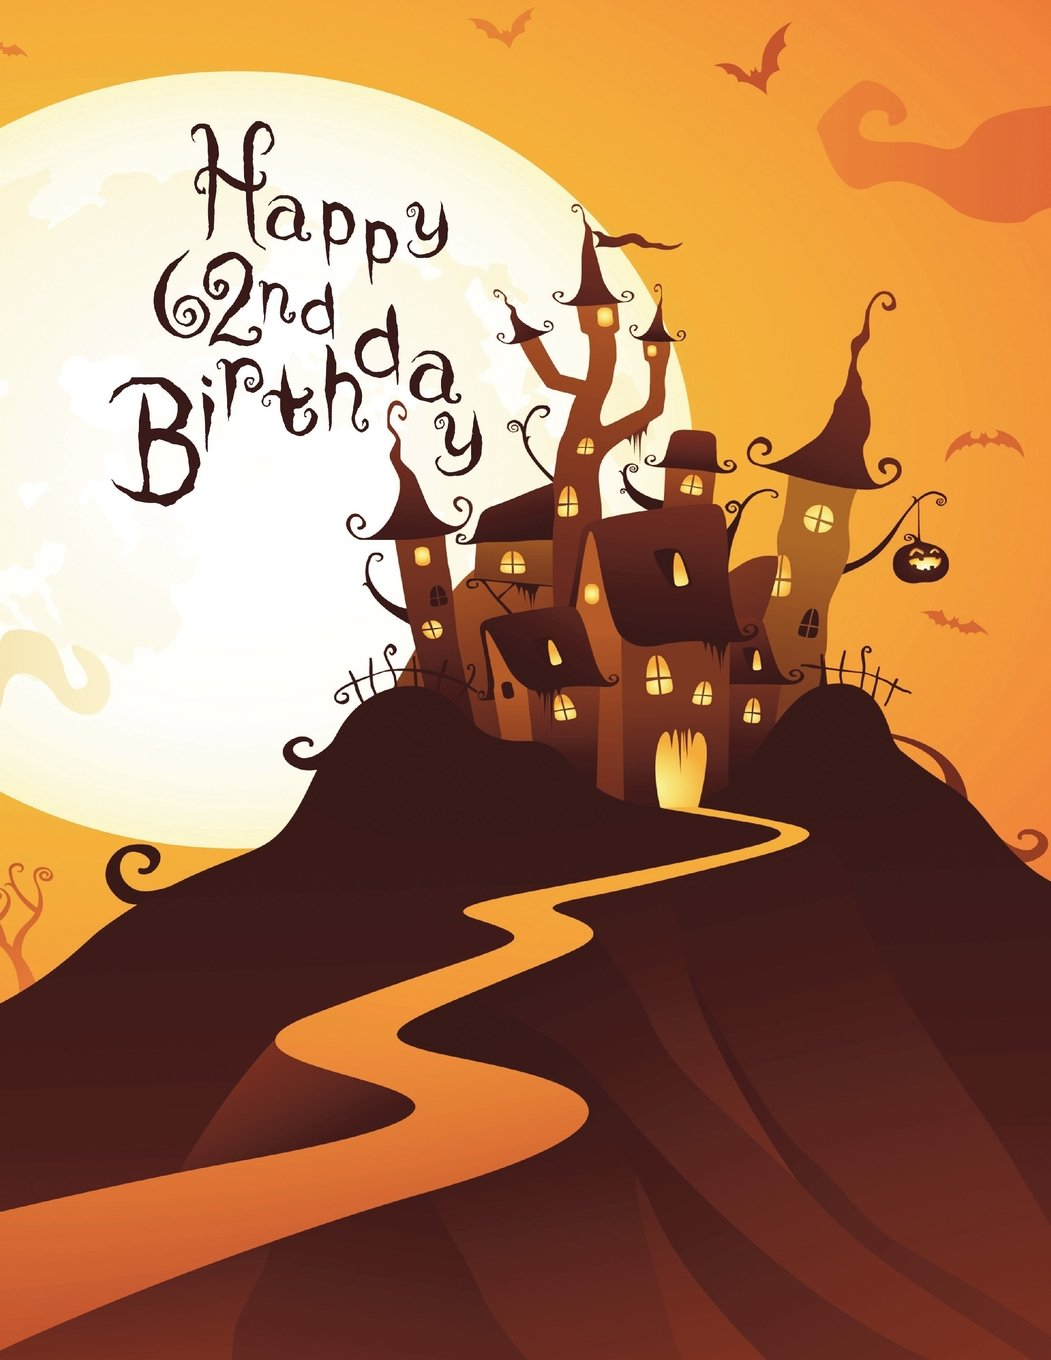 Happy 62nd Birthday Discreet Internet Website Password Organizer Haunted House Themed Gifts For 62 Year Old